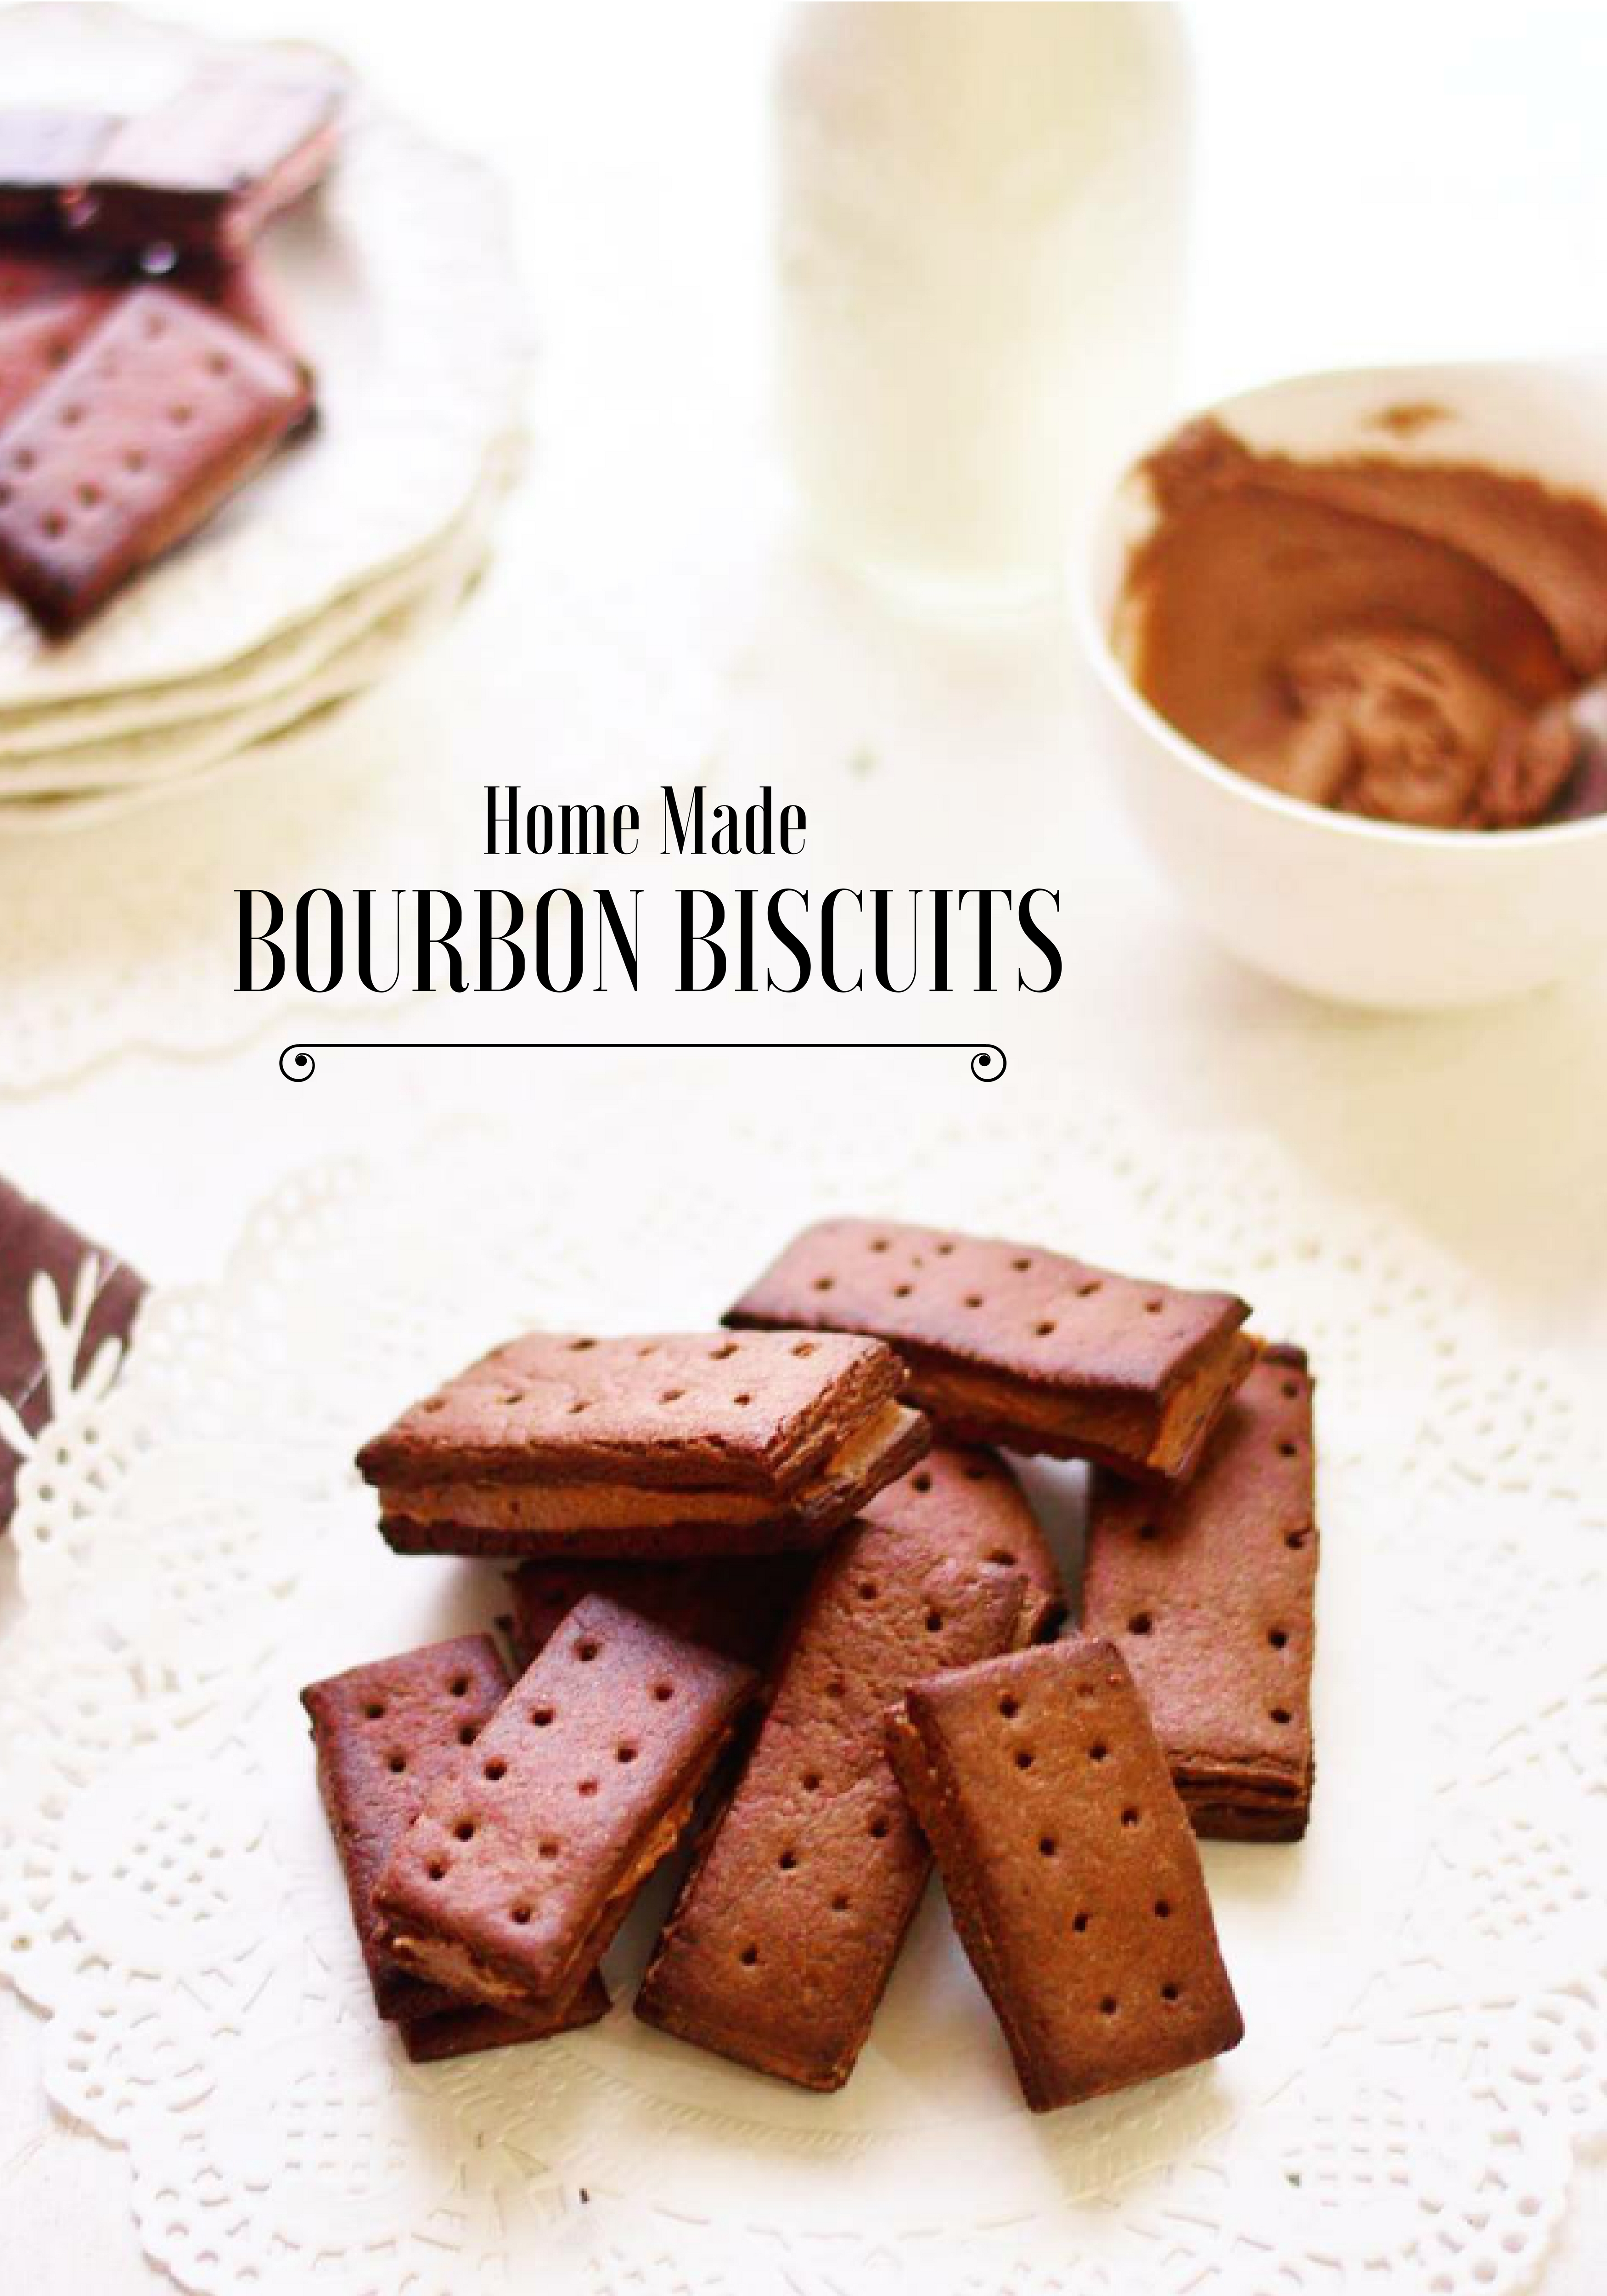 Homemade Bourbon Biscuit Chocolate Cream Filled Biscuits